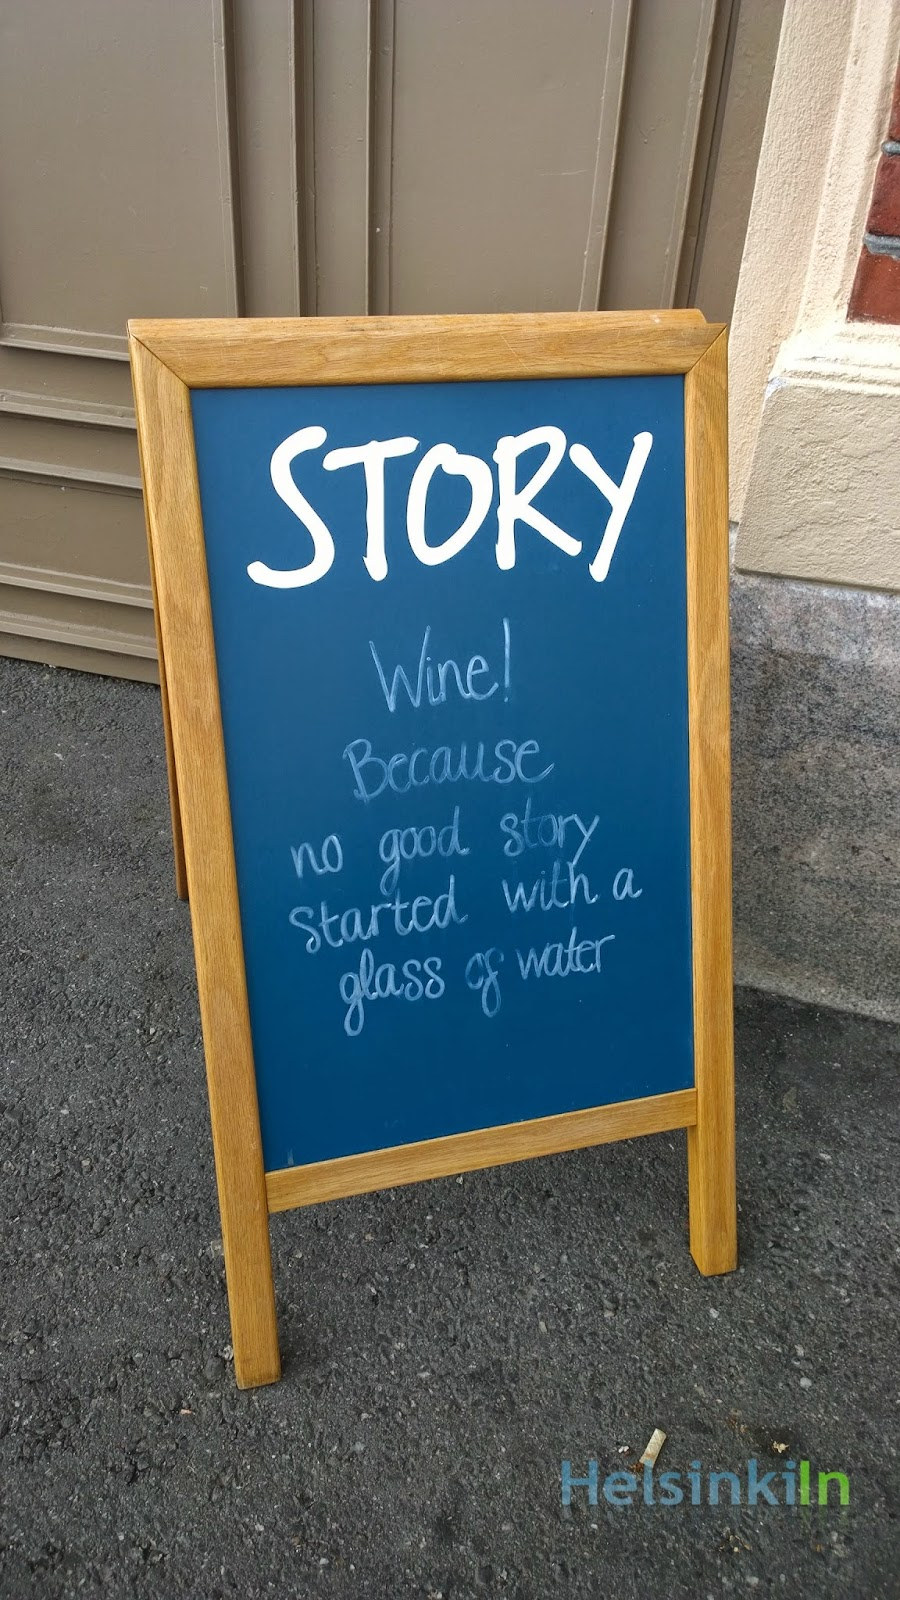 Wine! Because no good story started with a glass of water